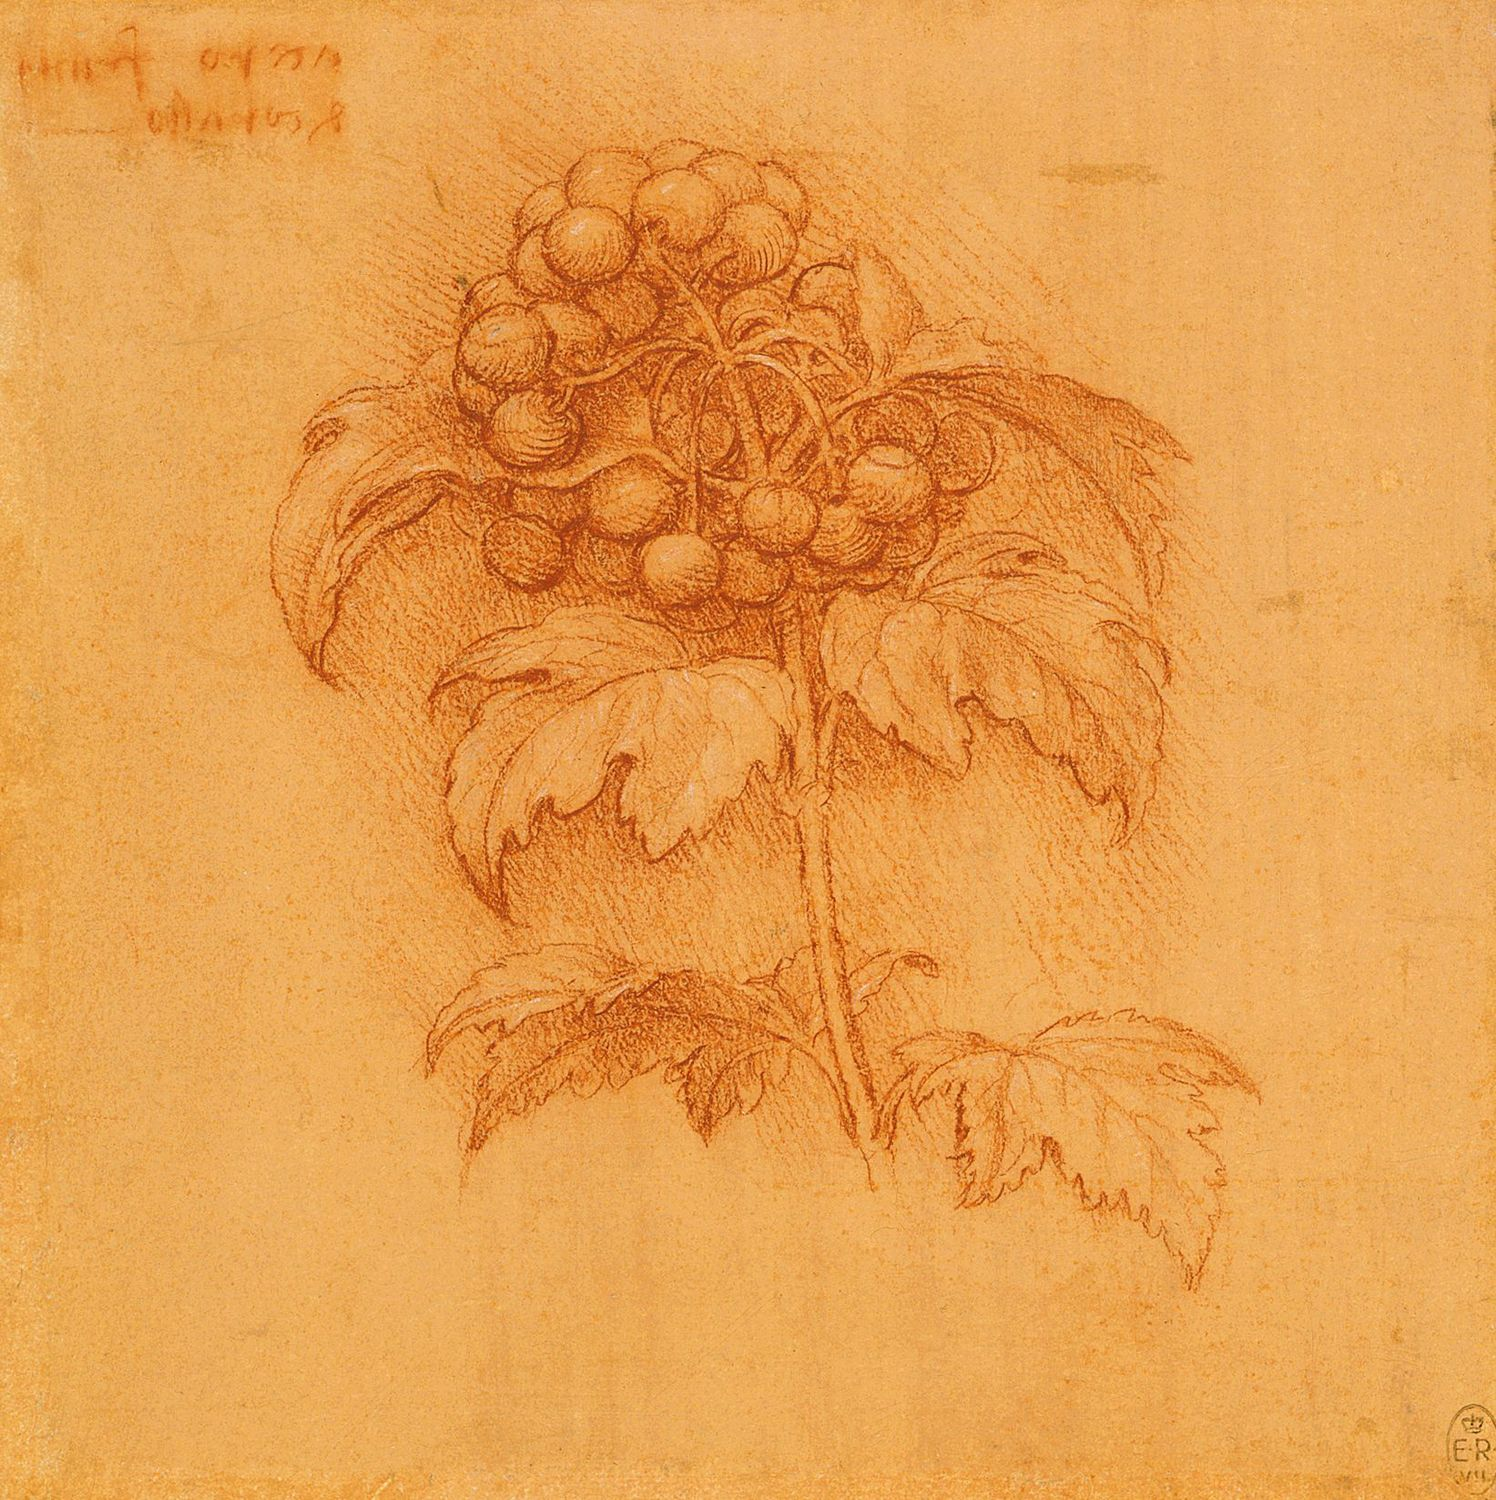 Leonardo da Vinci - Drawings - Plants - 09.jpg